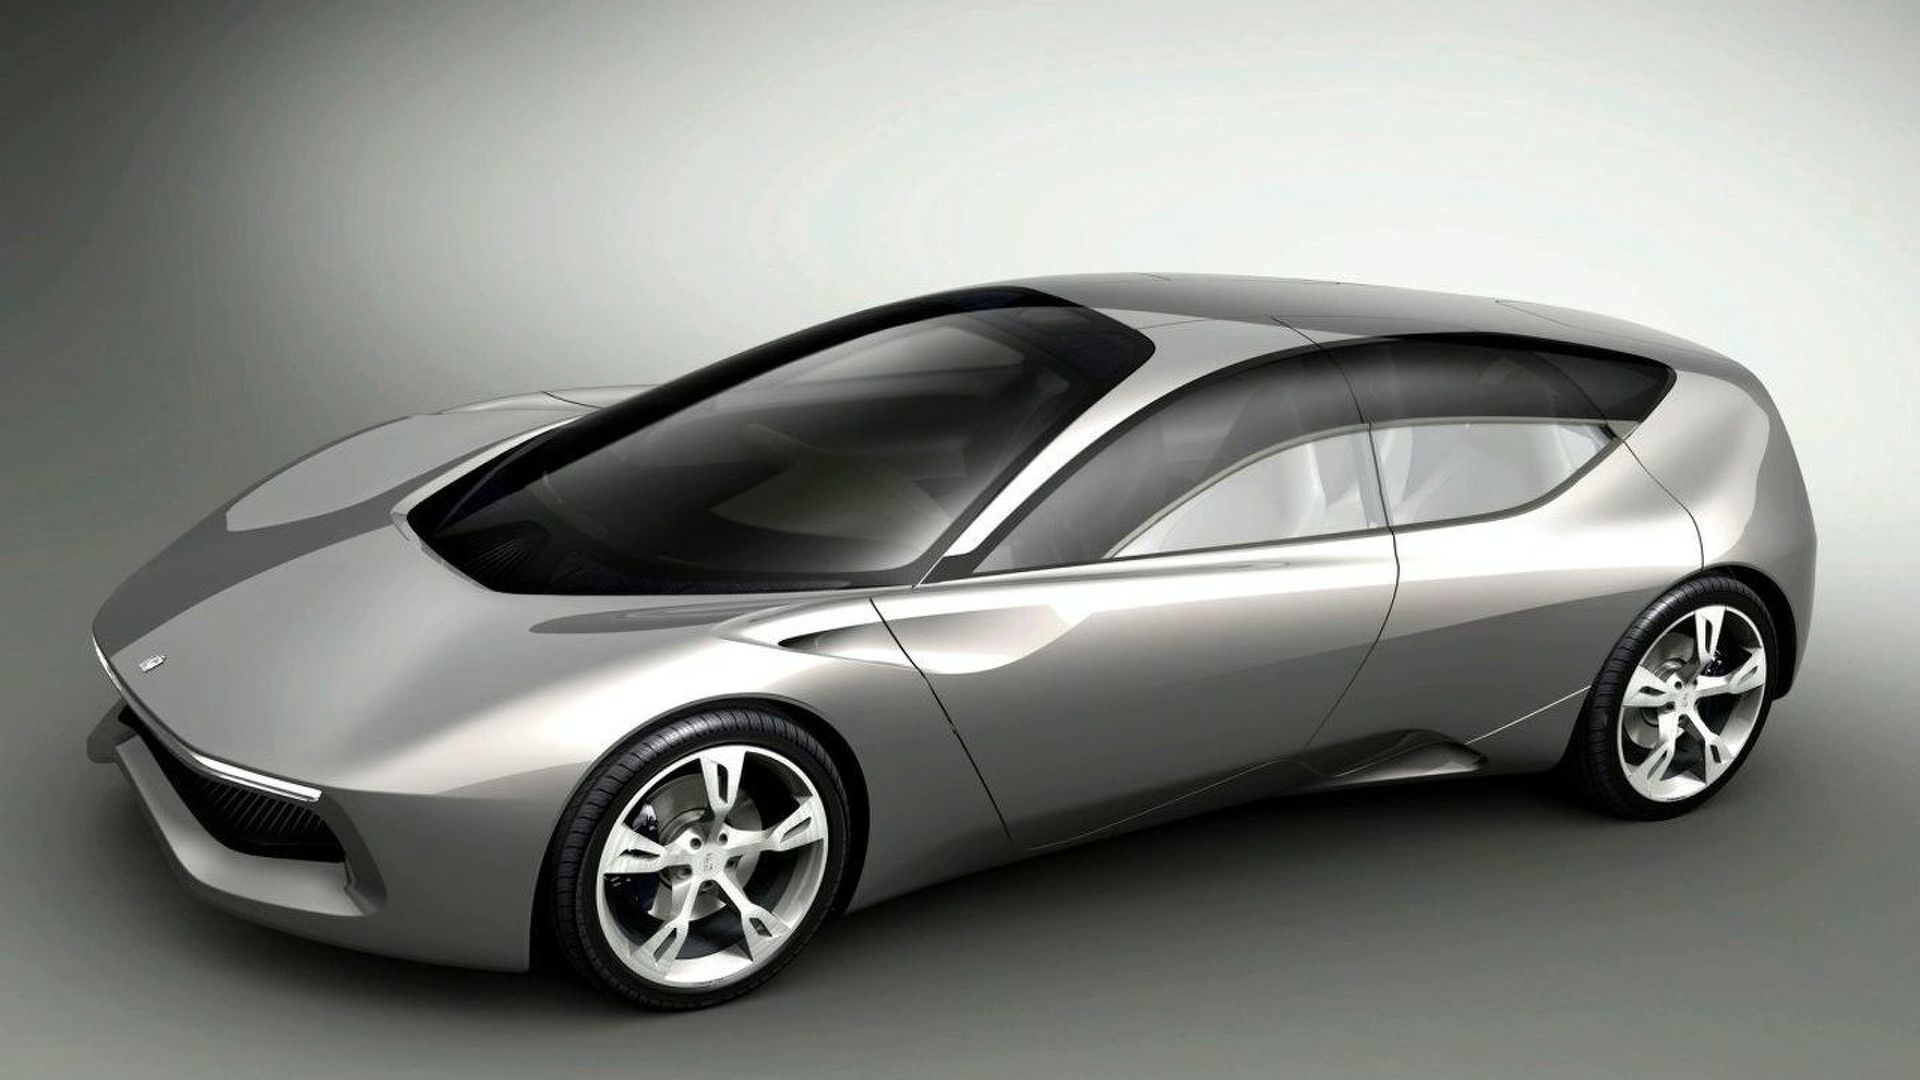 Here's A Detailed Look Back At The Pininfarina Sintesi: A Car Of The Future